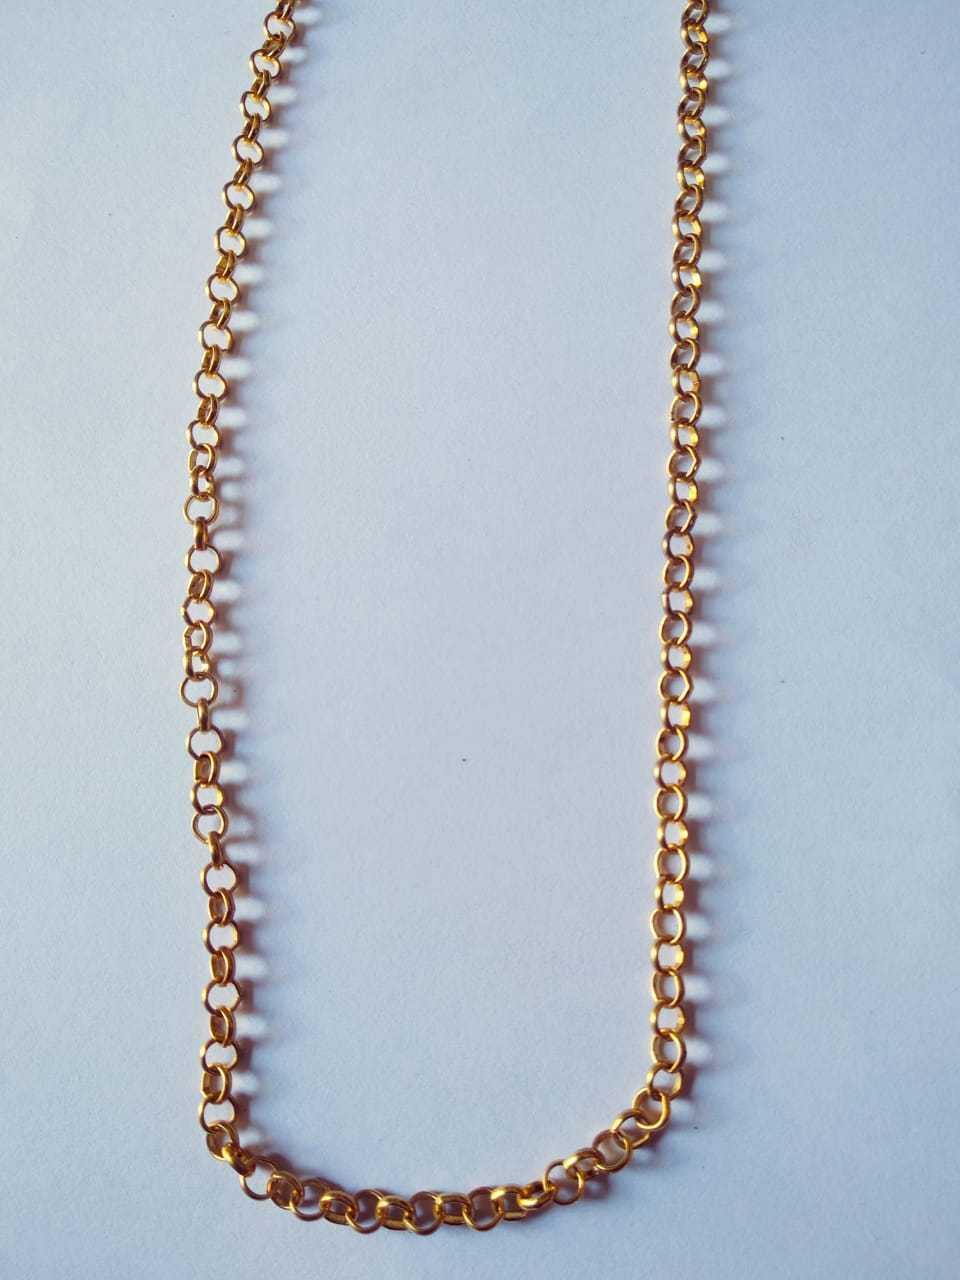 Micro Plated Chain 3 mm (34